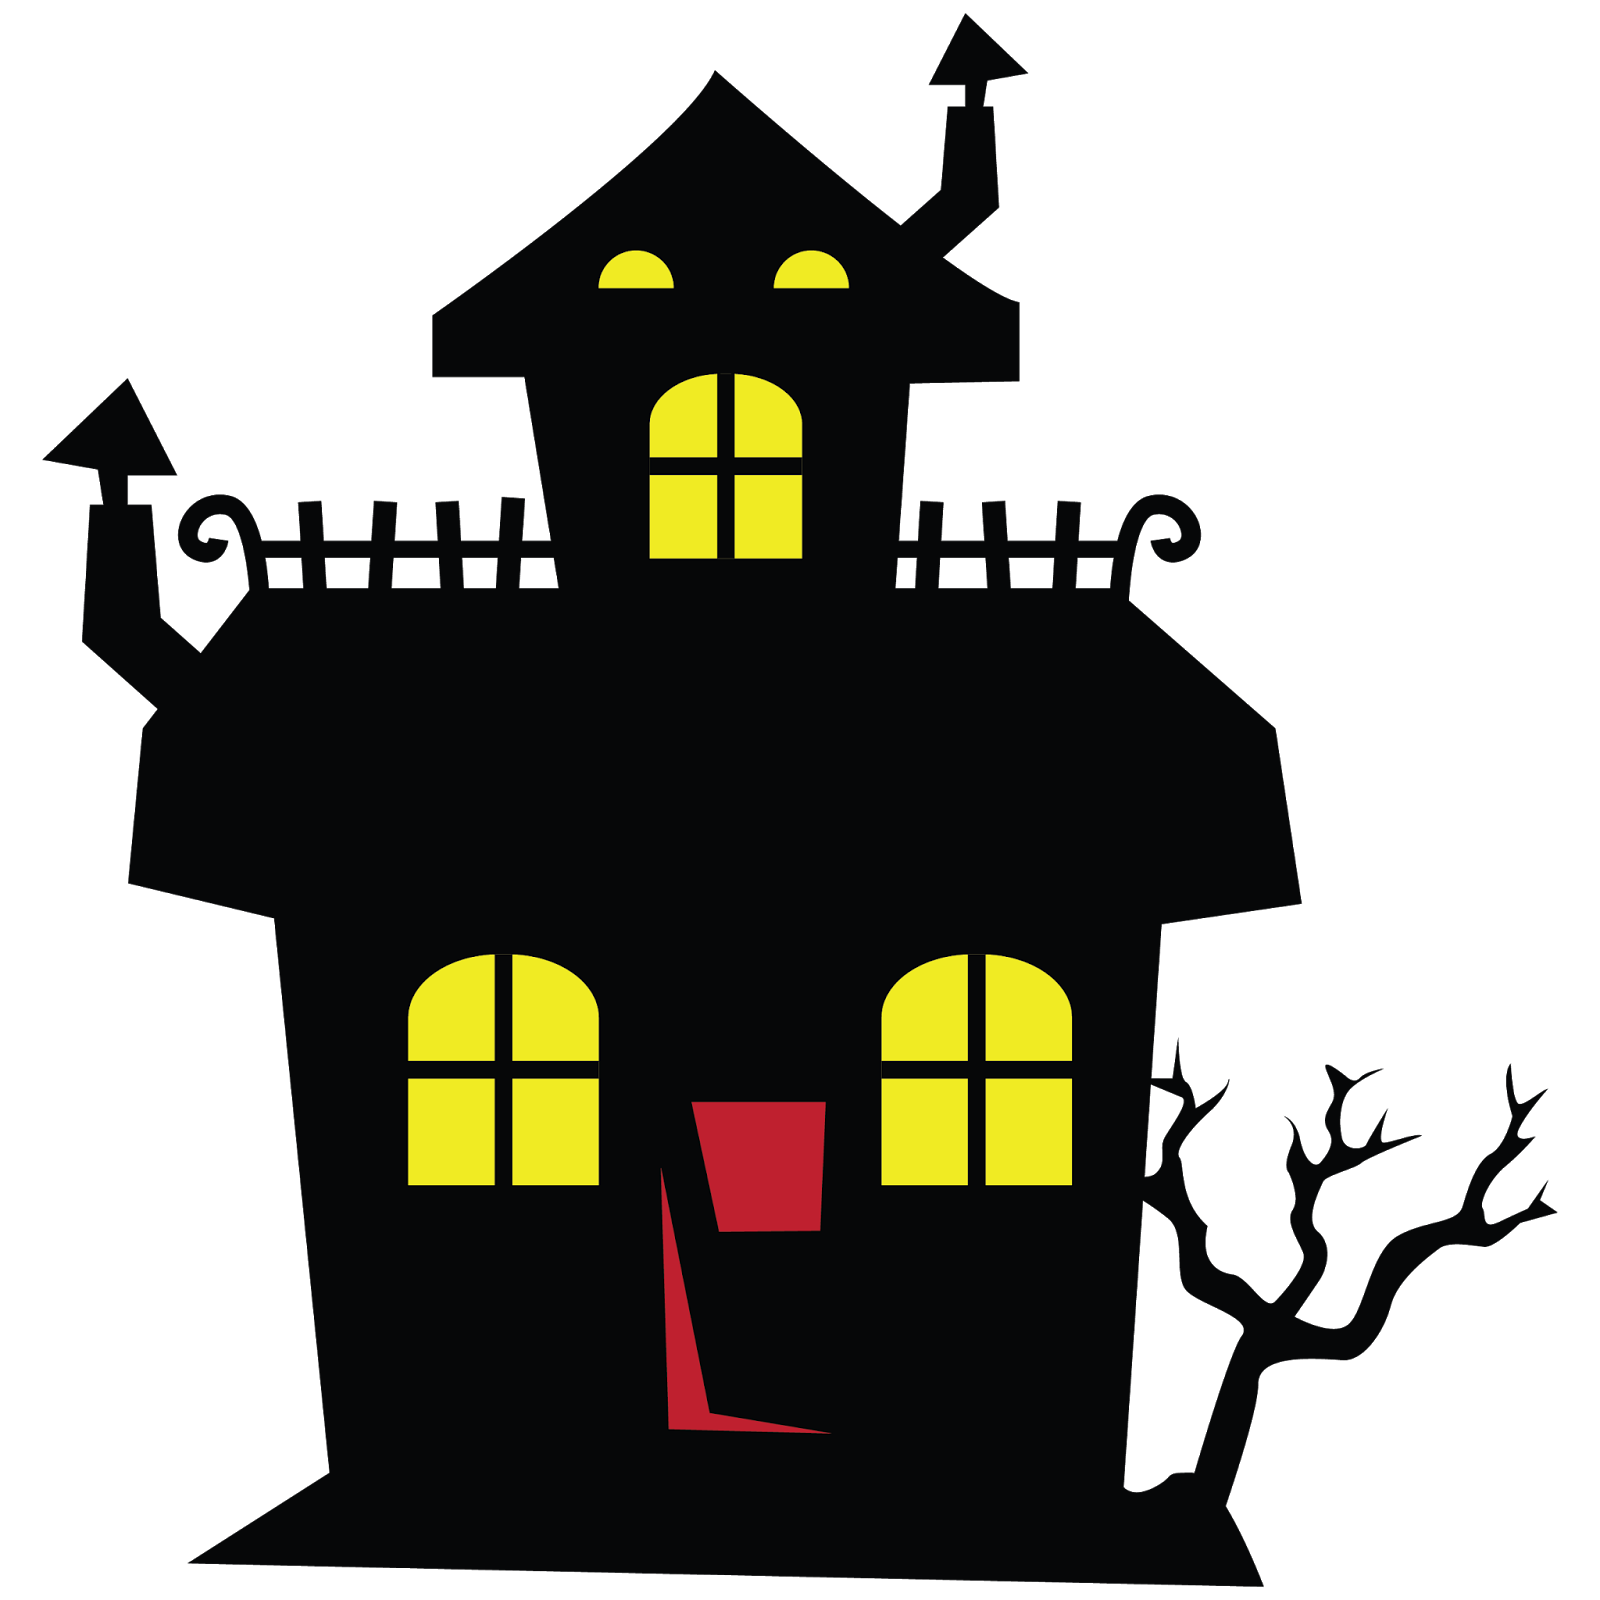 Clipart haunted house download Halloween Haunted House Clipart - Clip Art. Net download